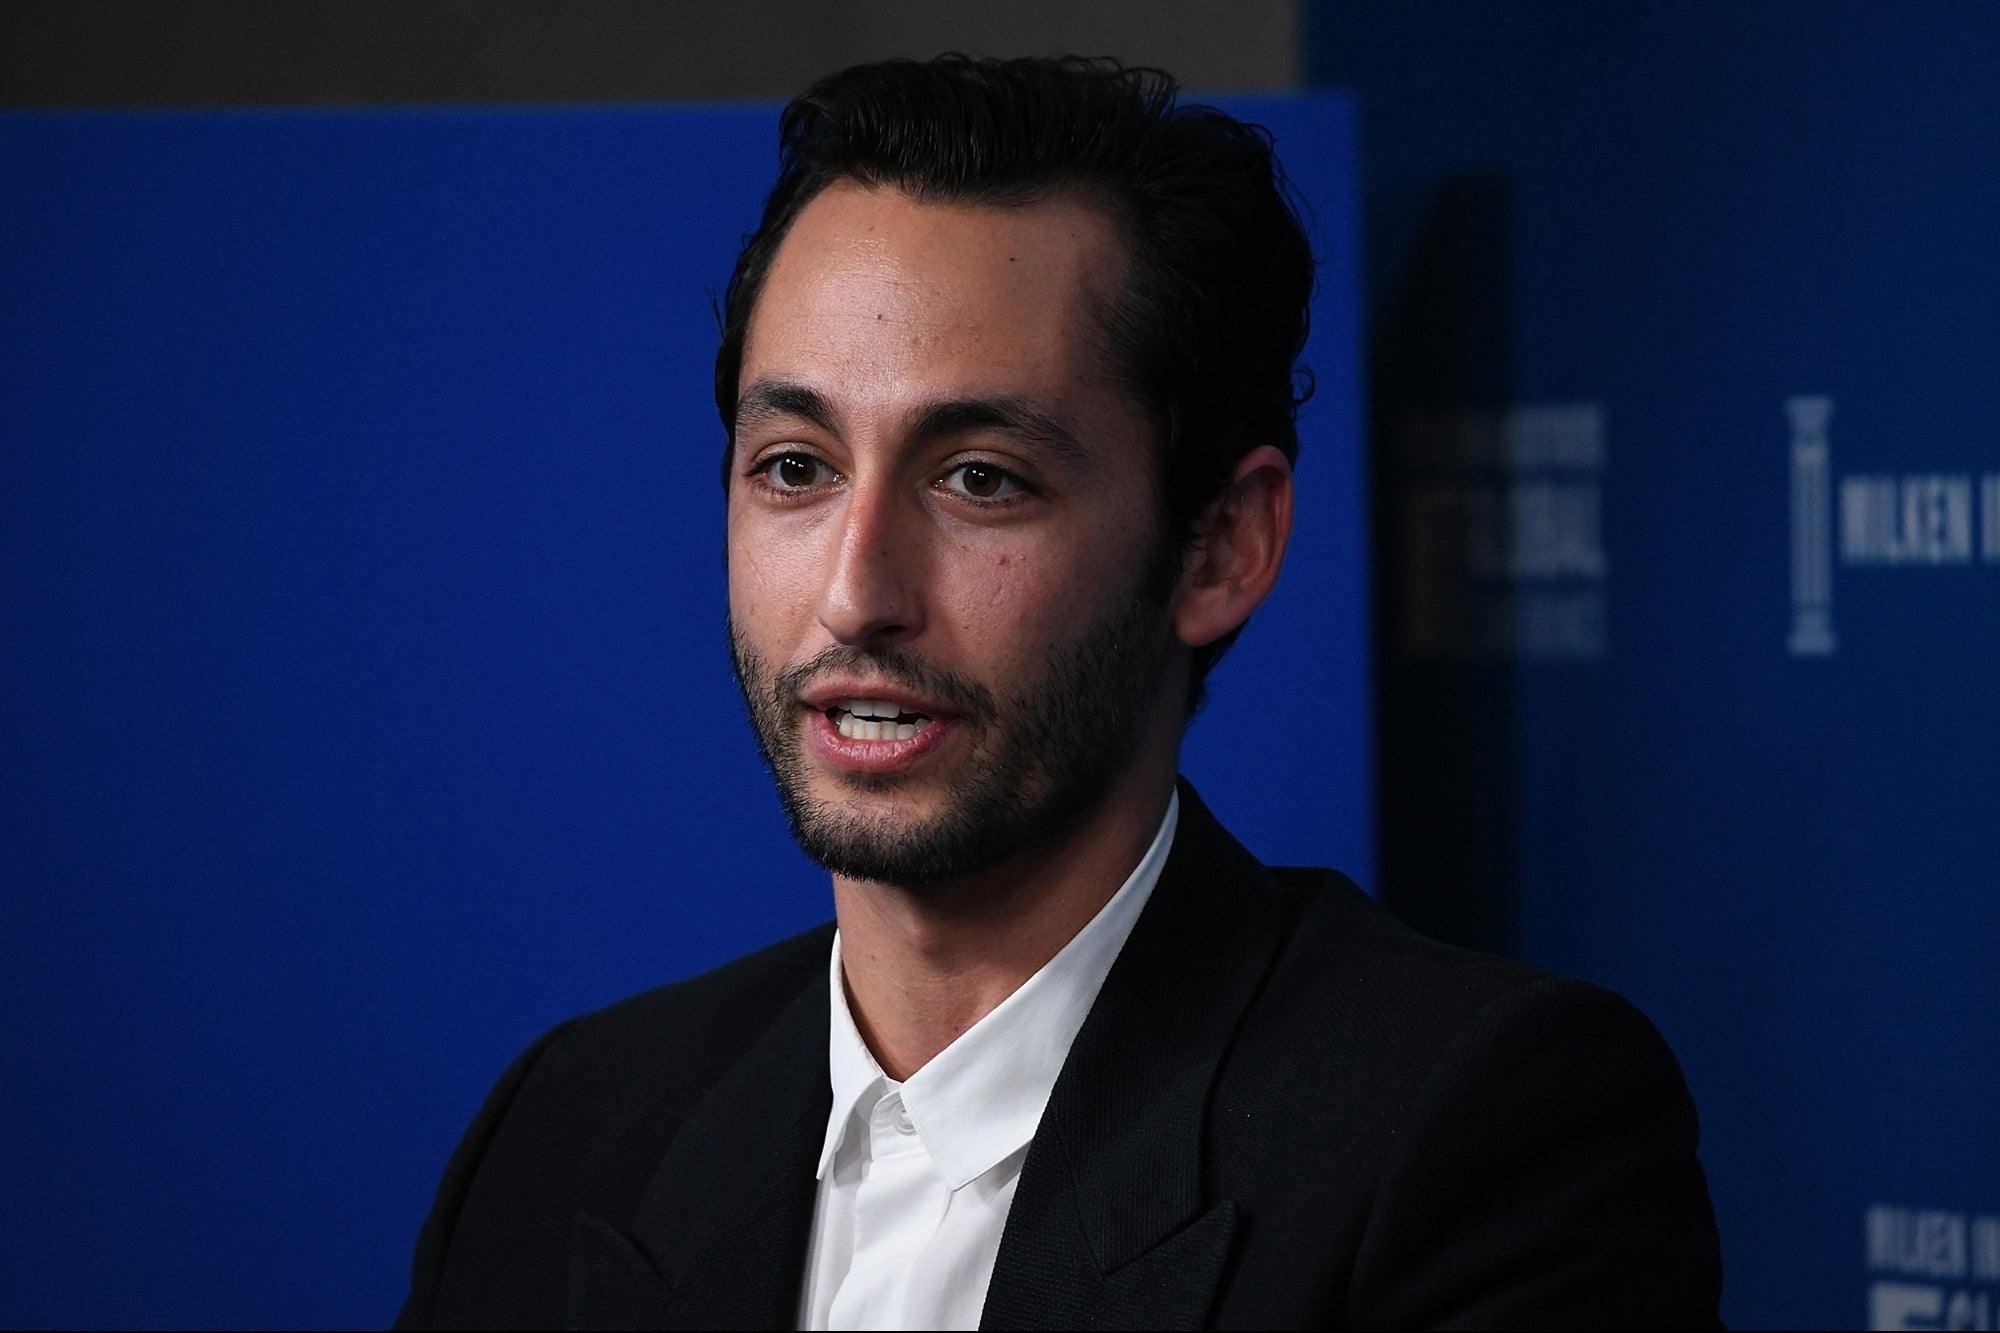 'The CEO of Sweetgreen Hates Fat People': Salad Chain CEO Slammed For Comments on Obesity